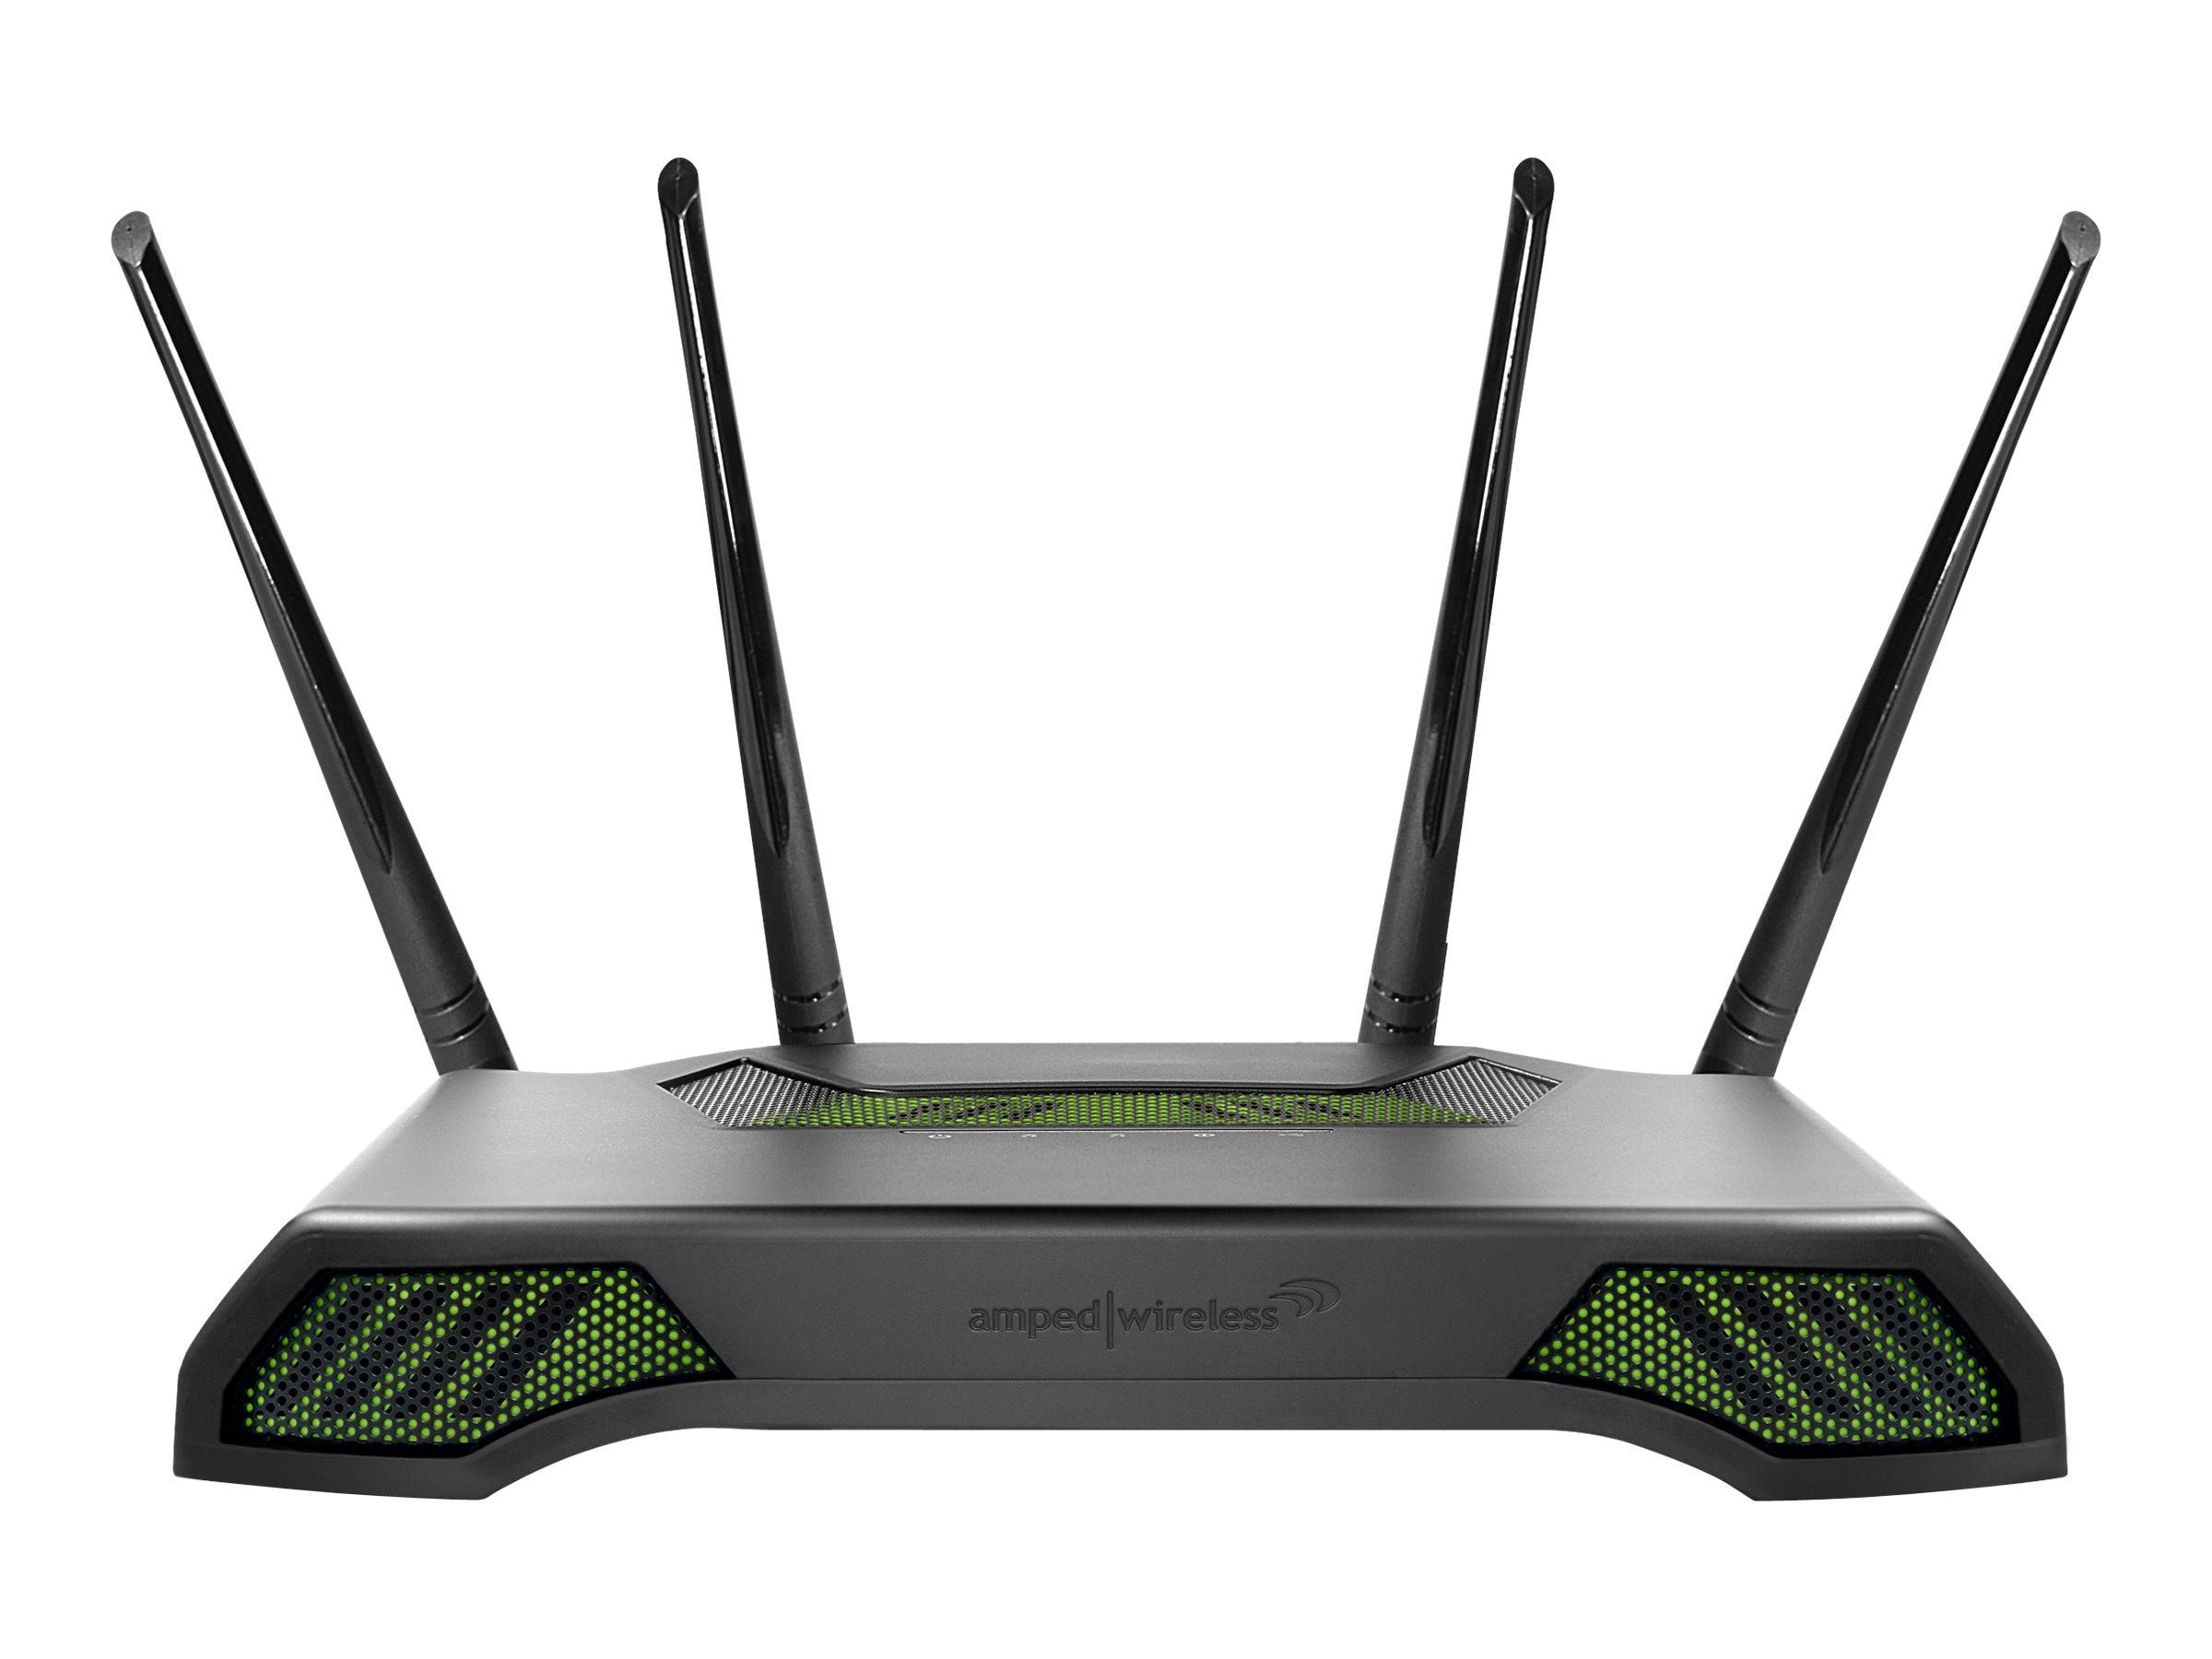 Amped Wireless High Power AC1900 Wi-Fi Router, RTA1900, 26838400, Wireless Routers